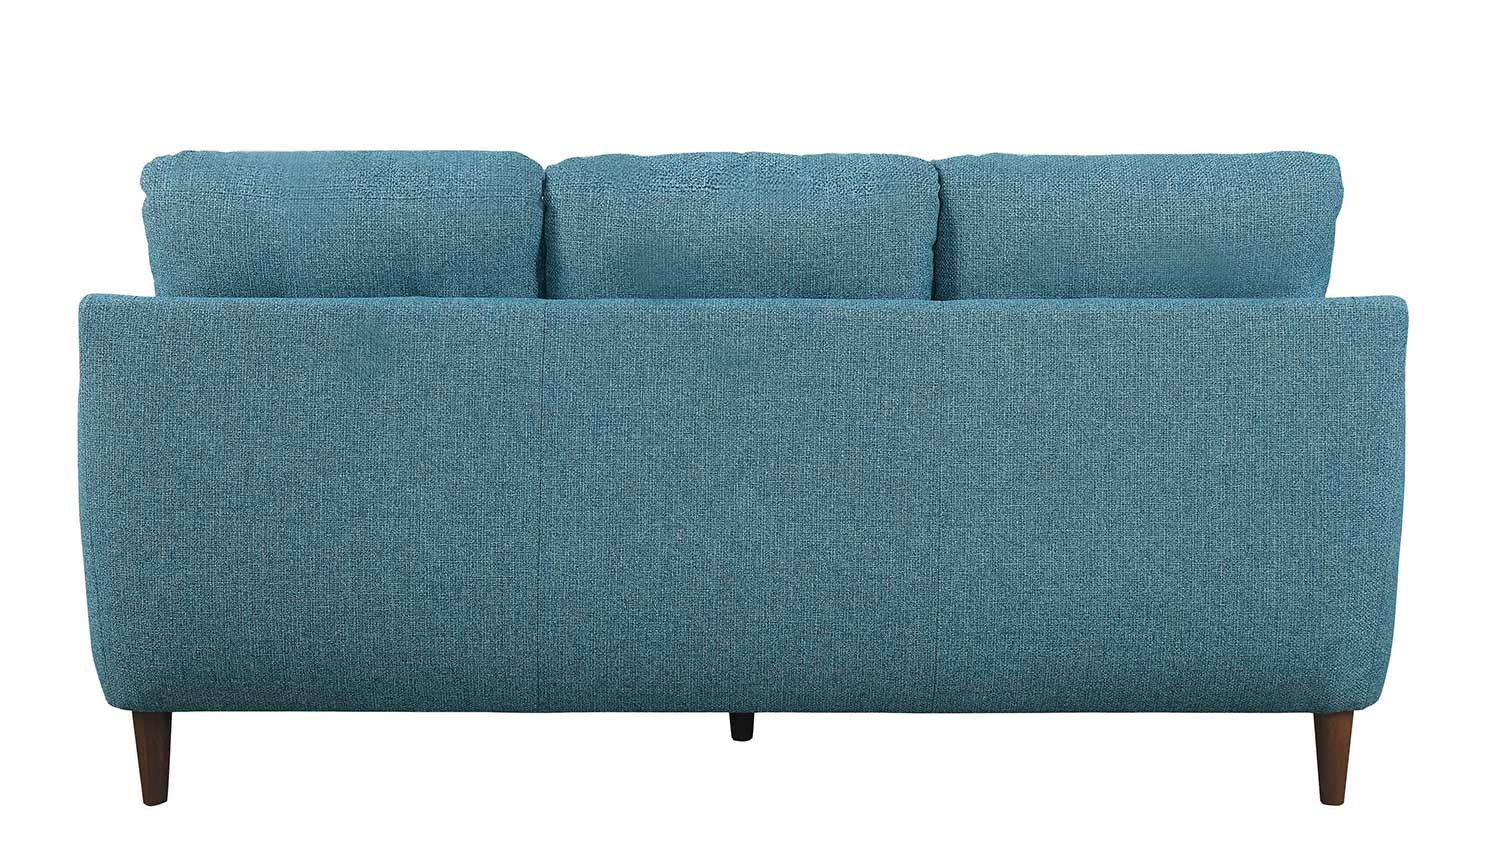 Homelegance Cagle Sofa - Blue